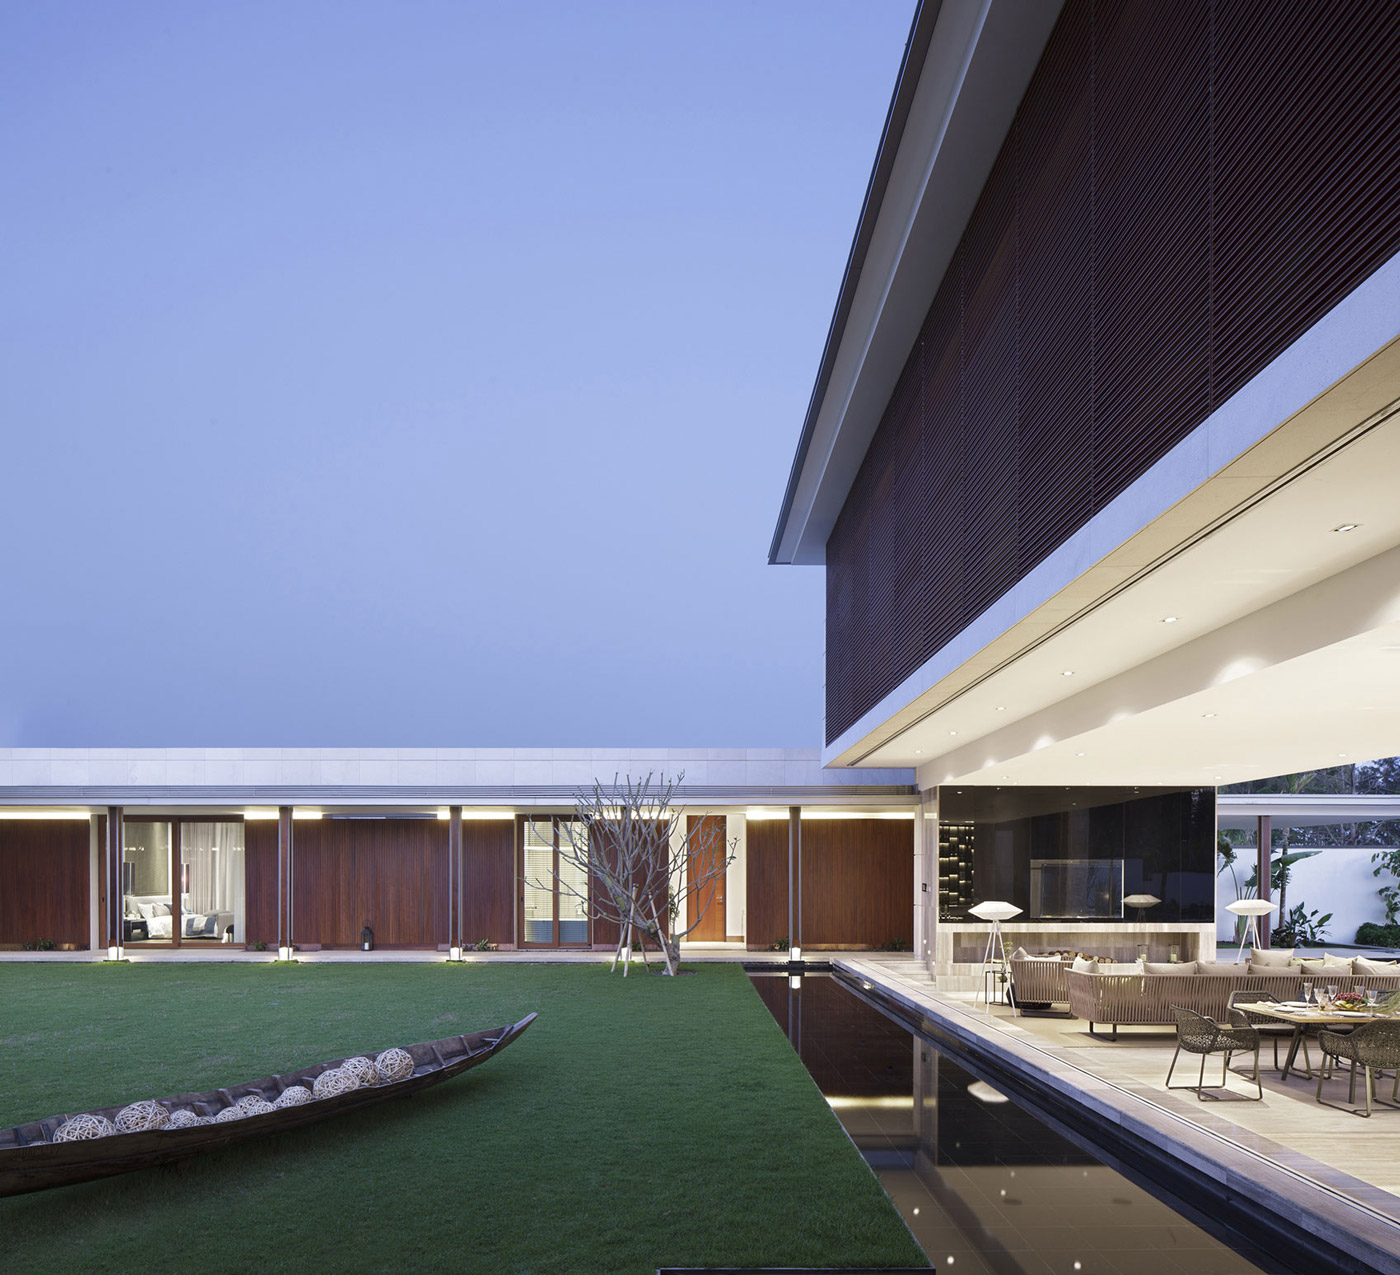 Water Feature, Lawn, Open Living & Dining Space, Beachside Villas in Lingshui, Hainan, China